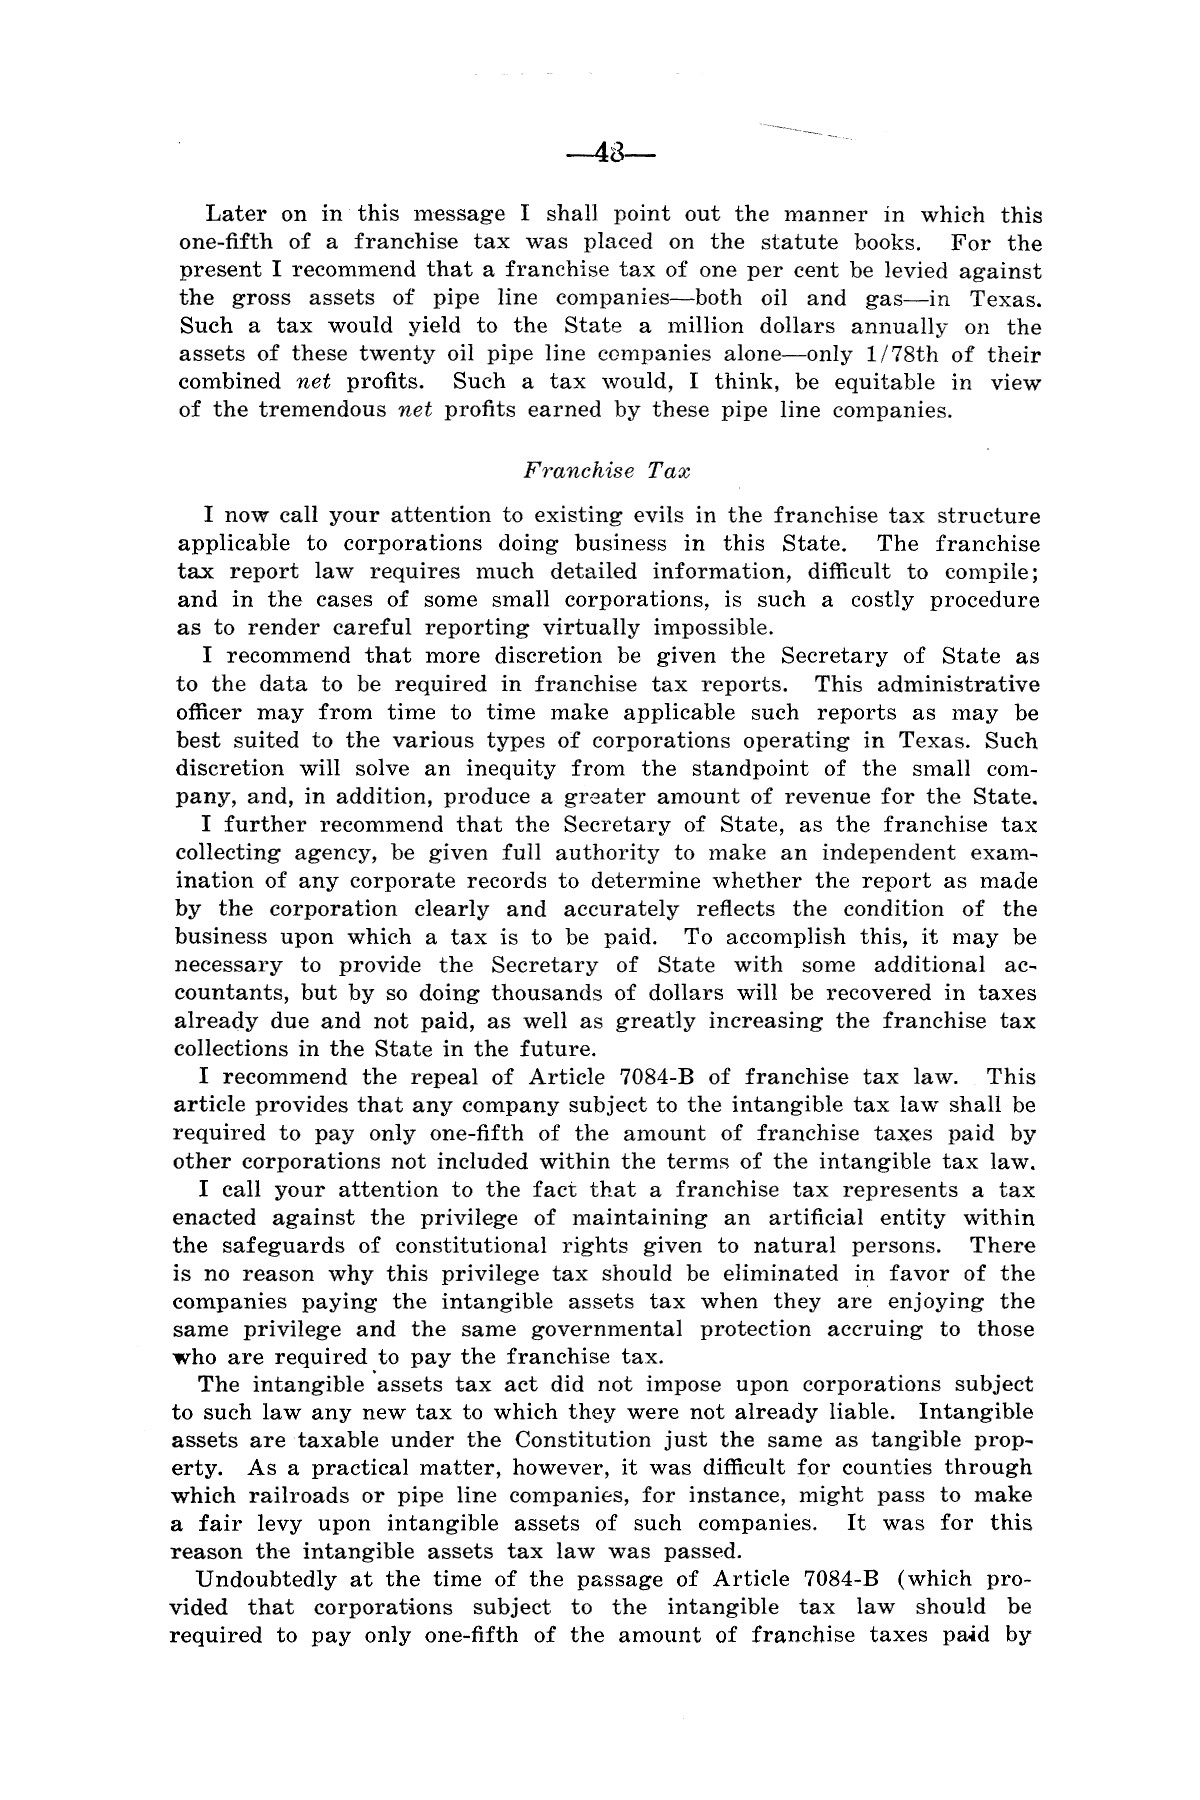 Legislative Messages of Hon. James V. Allred, Governor of Texas 1935-1939                                                                                                      [Sequence #]: 47 of 263